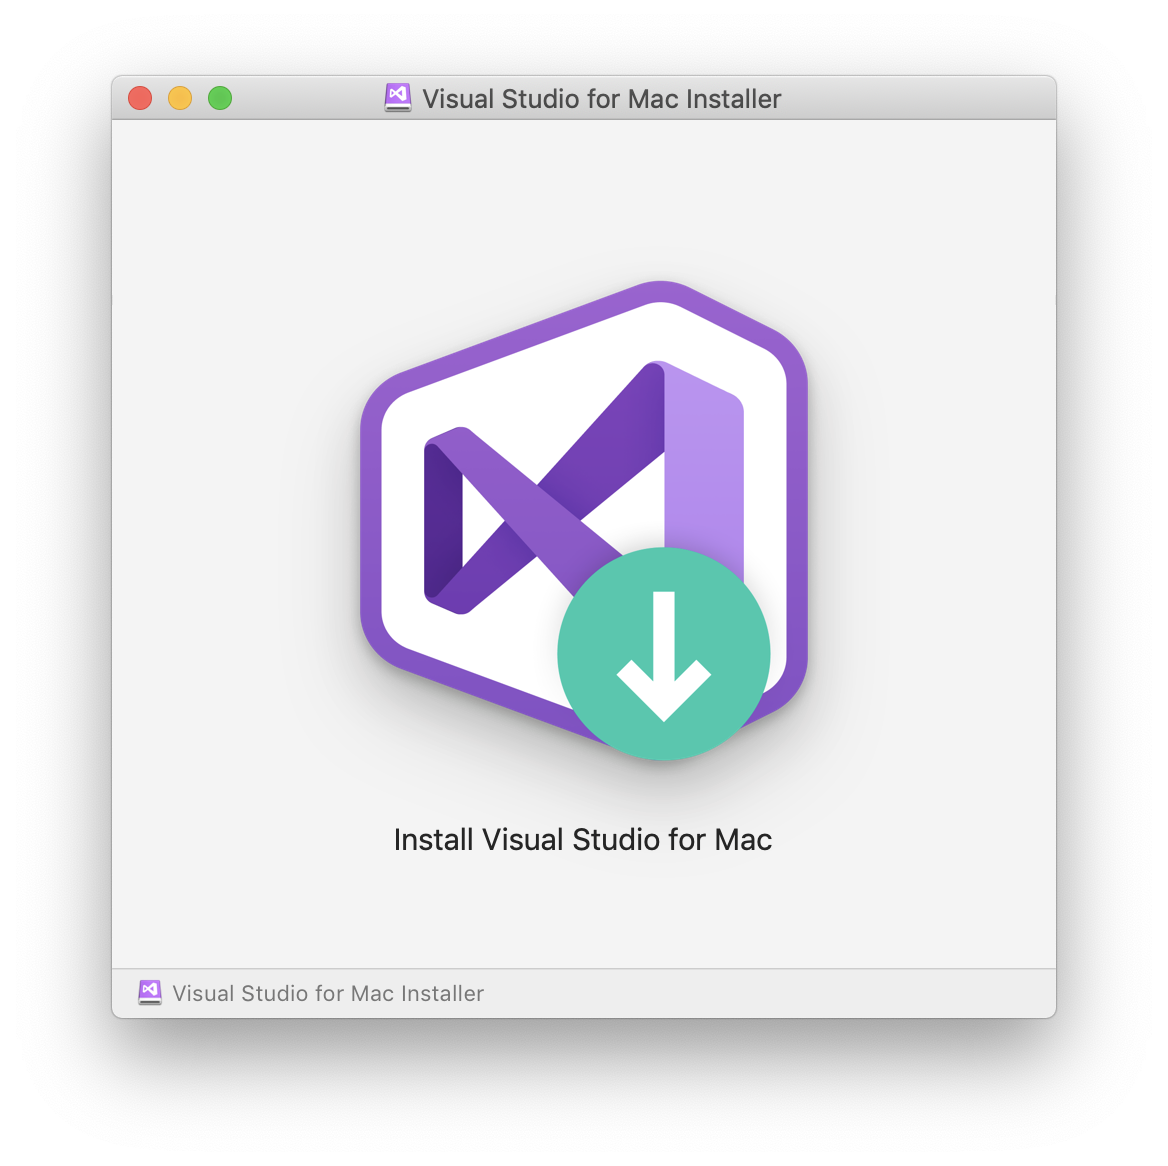 Install Visual Studio 2019 for Mac - Visual Studio 2019 for